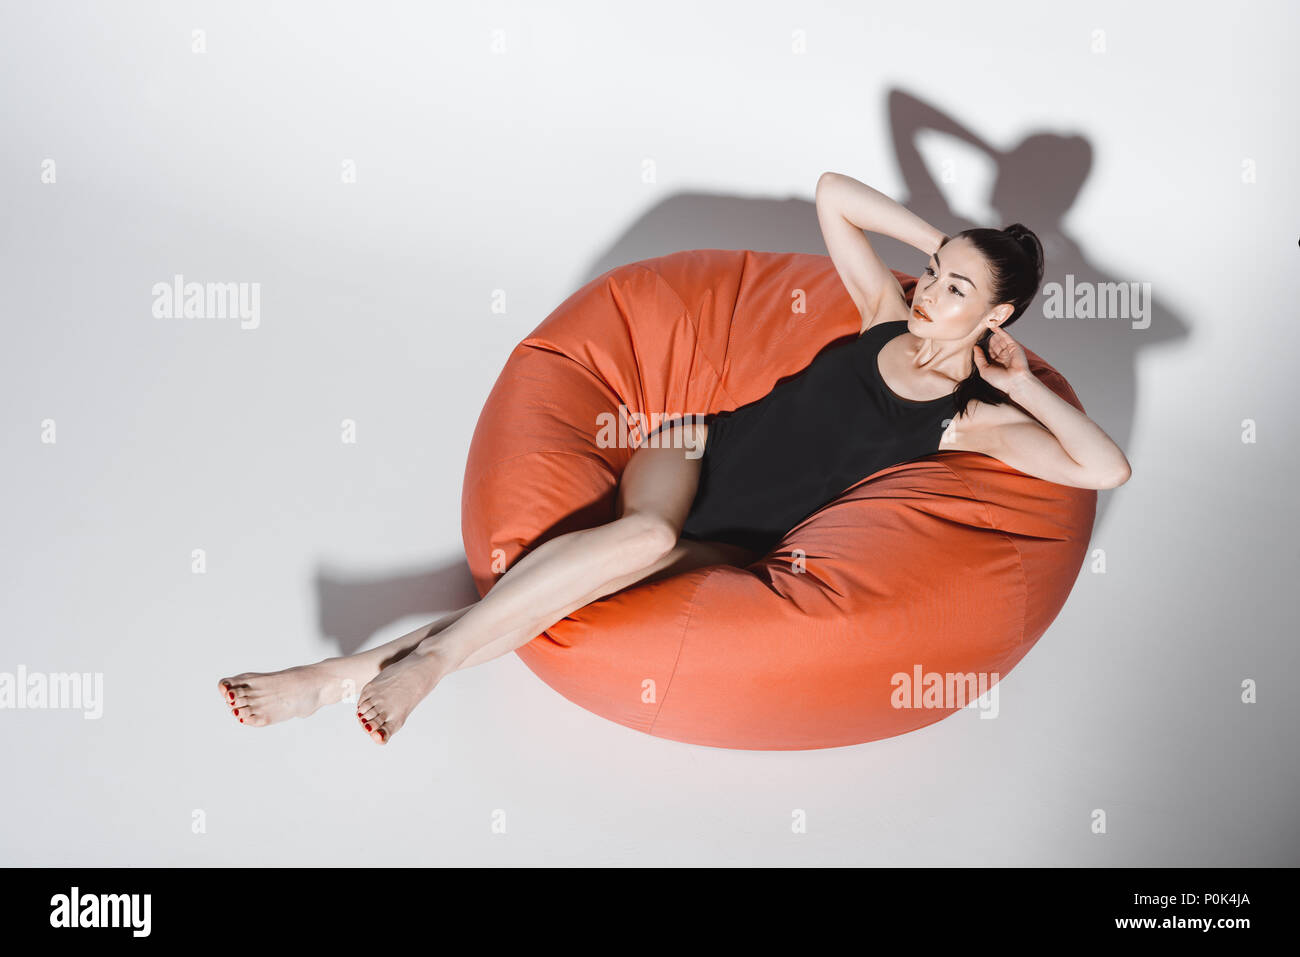 Beautiful young woman in black swimsuit resting in bean bag chair on grey - Stock Image